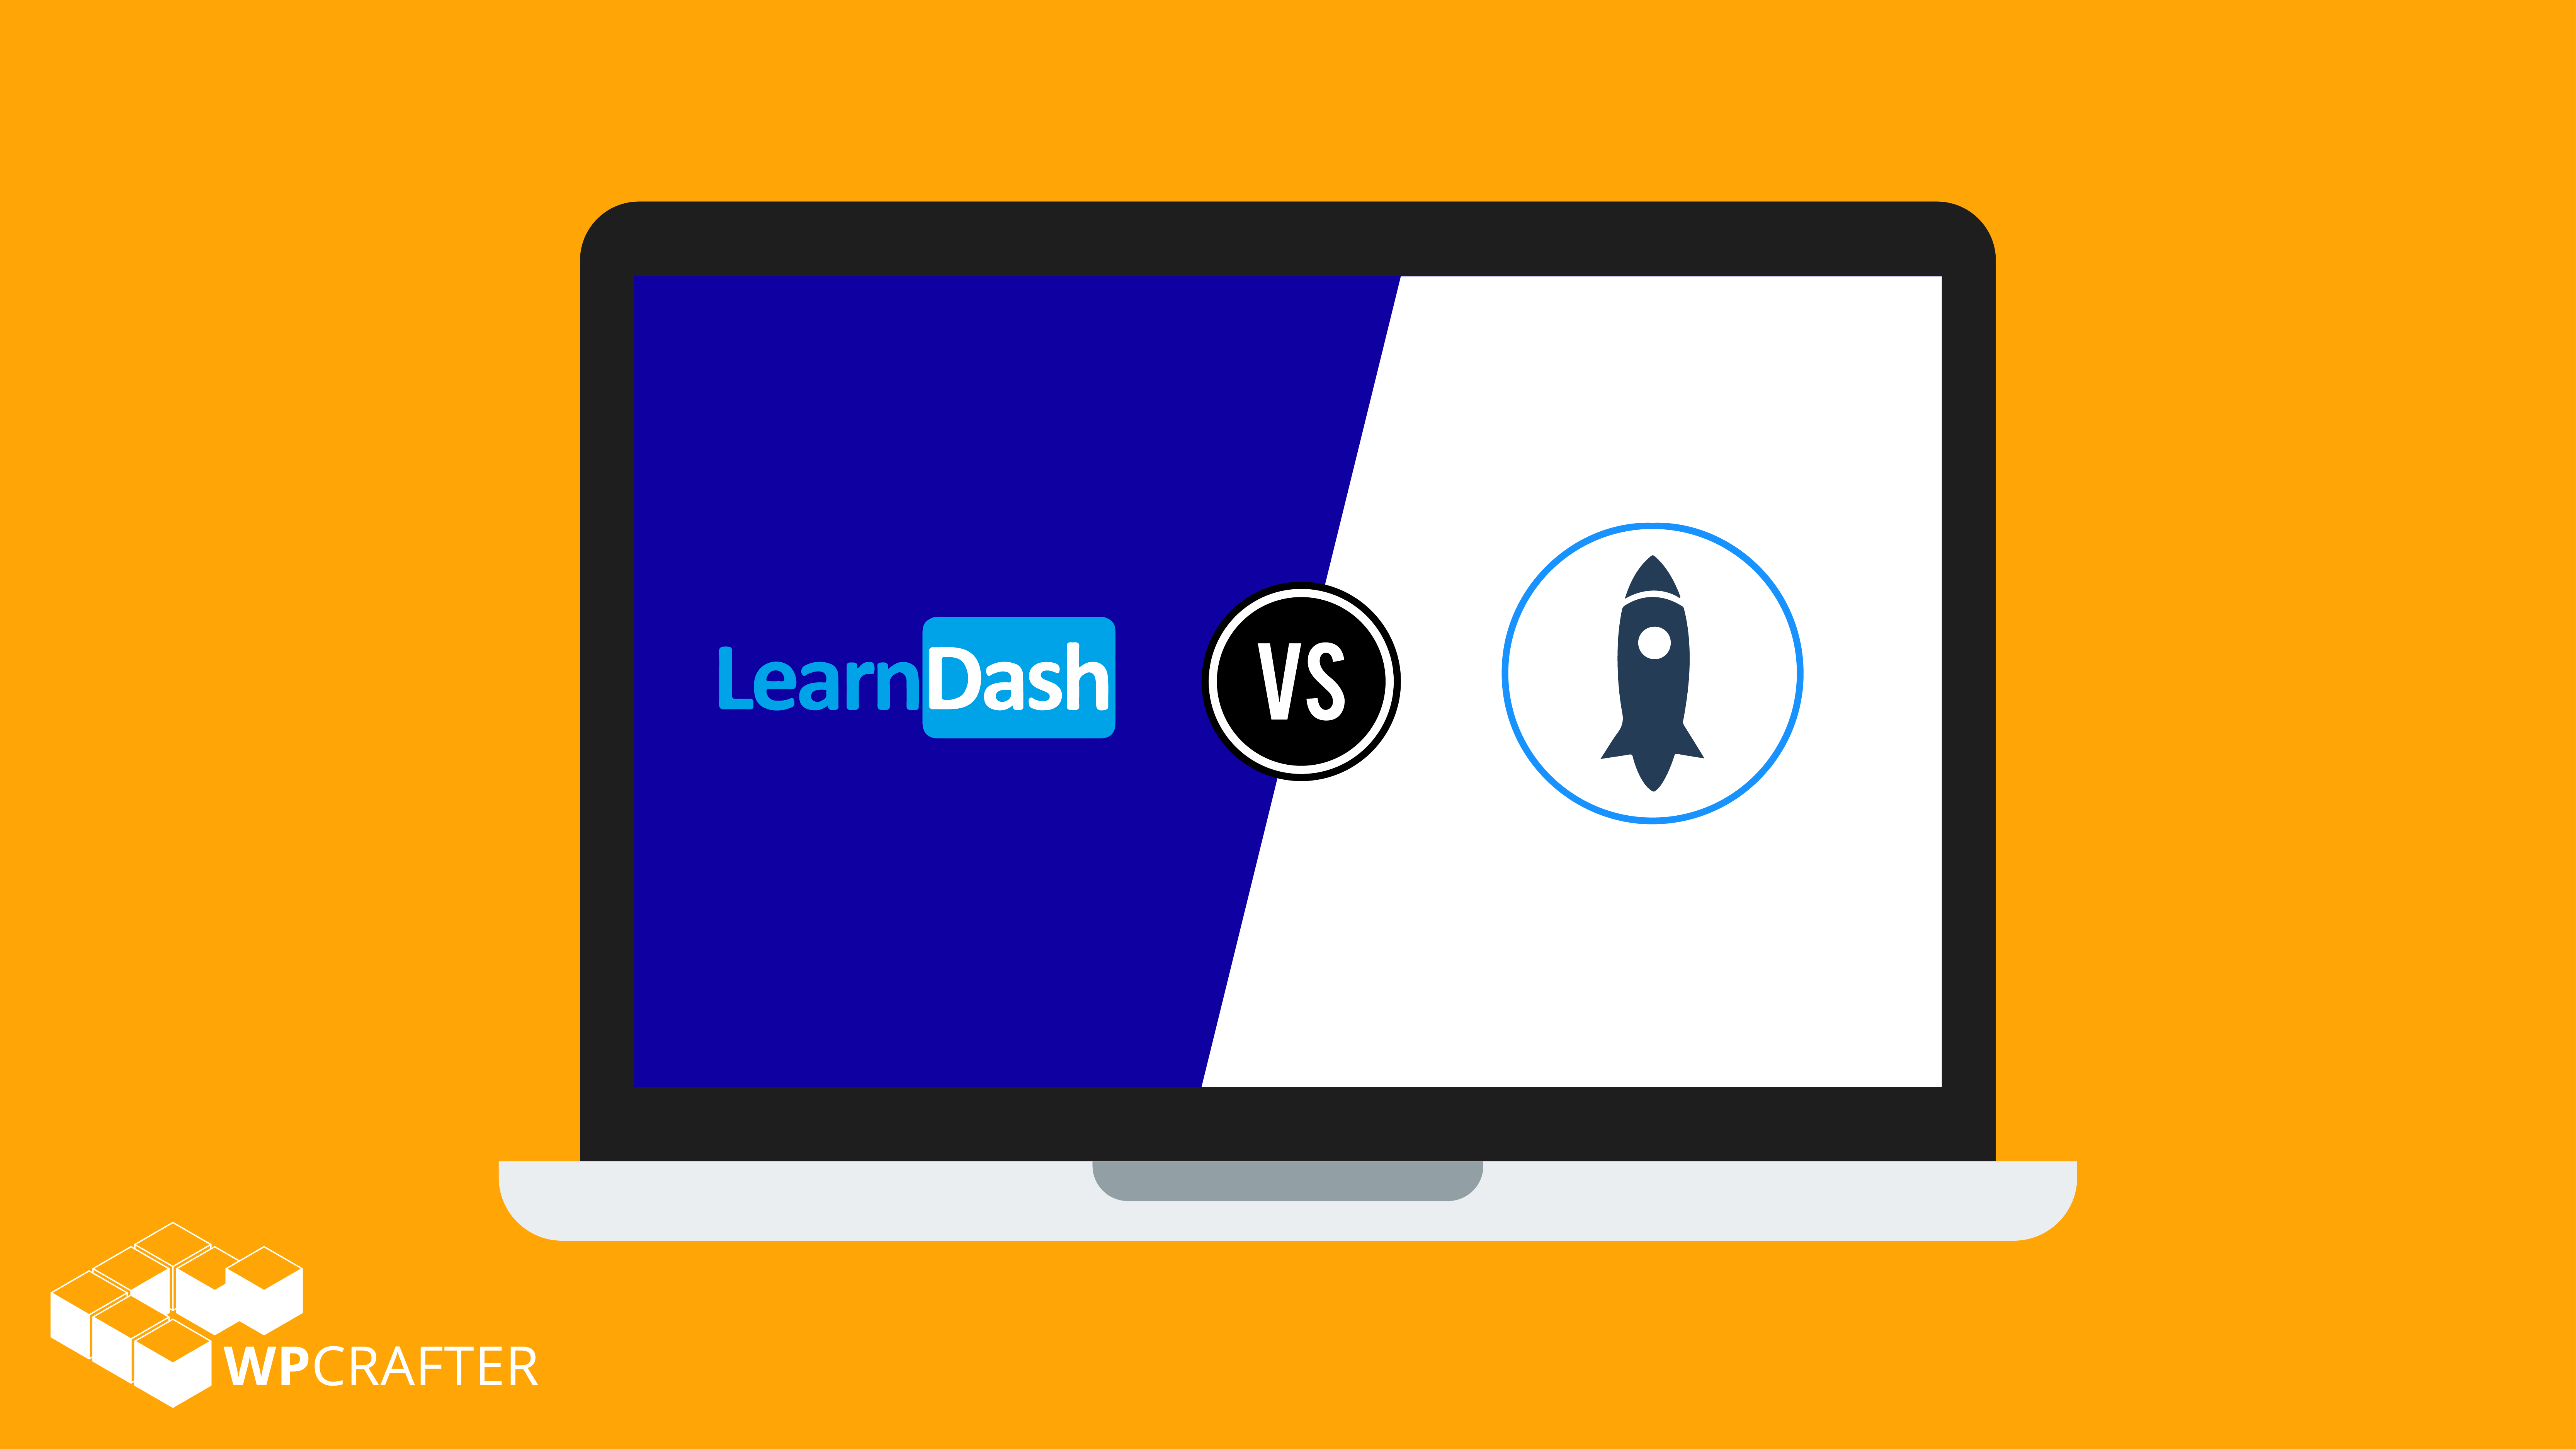 LearnDash Vs LifterLMS (September 2019) - Learning